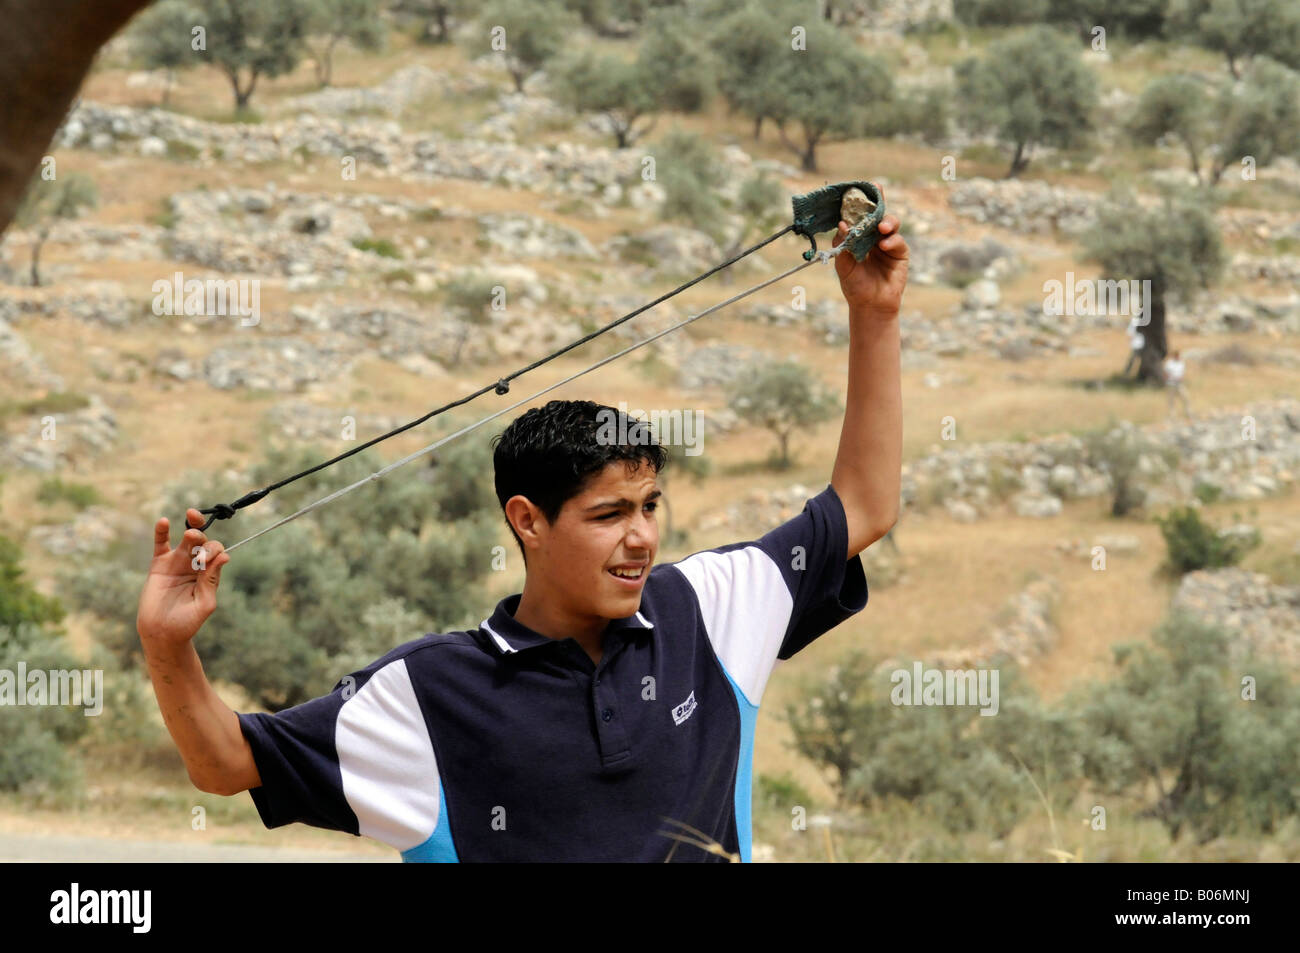 Against During Protest Palestinian Sling Shot Shooting A Child xZAwqW0